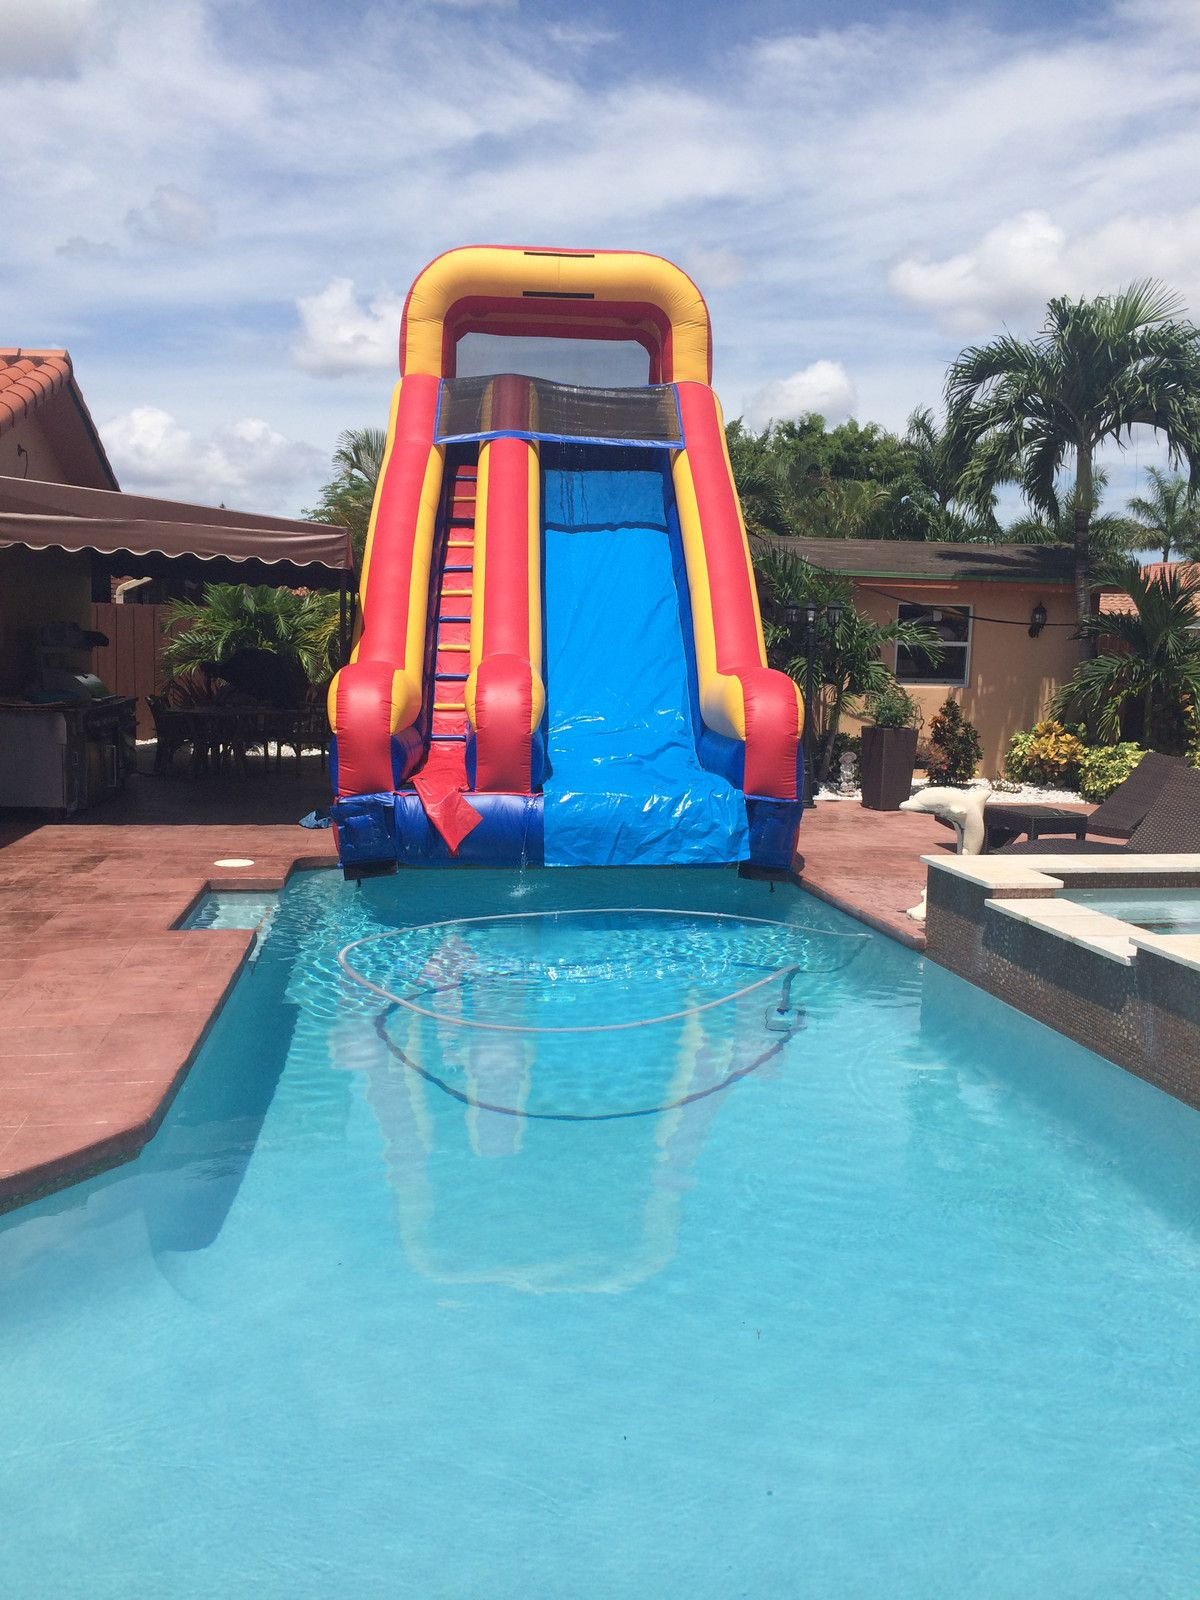 20 Tall Slide Into The Pool Water Slide In 2019 Pool